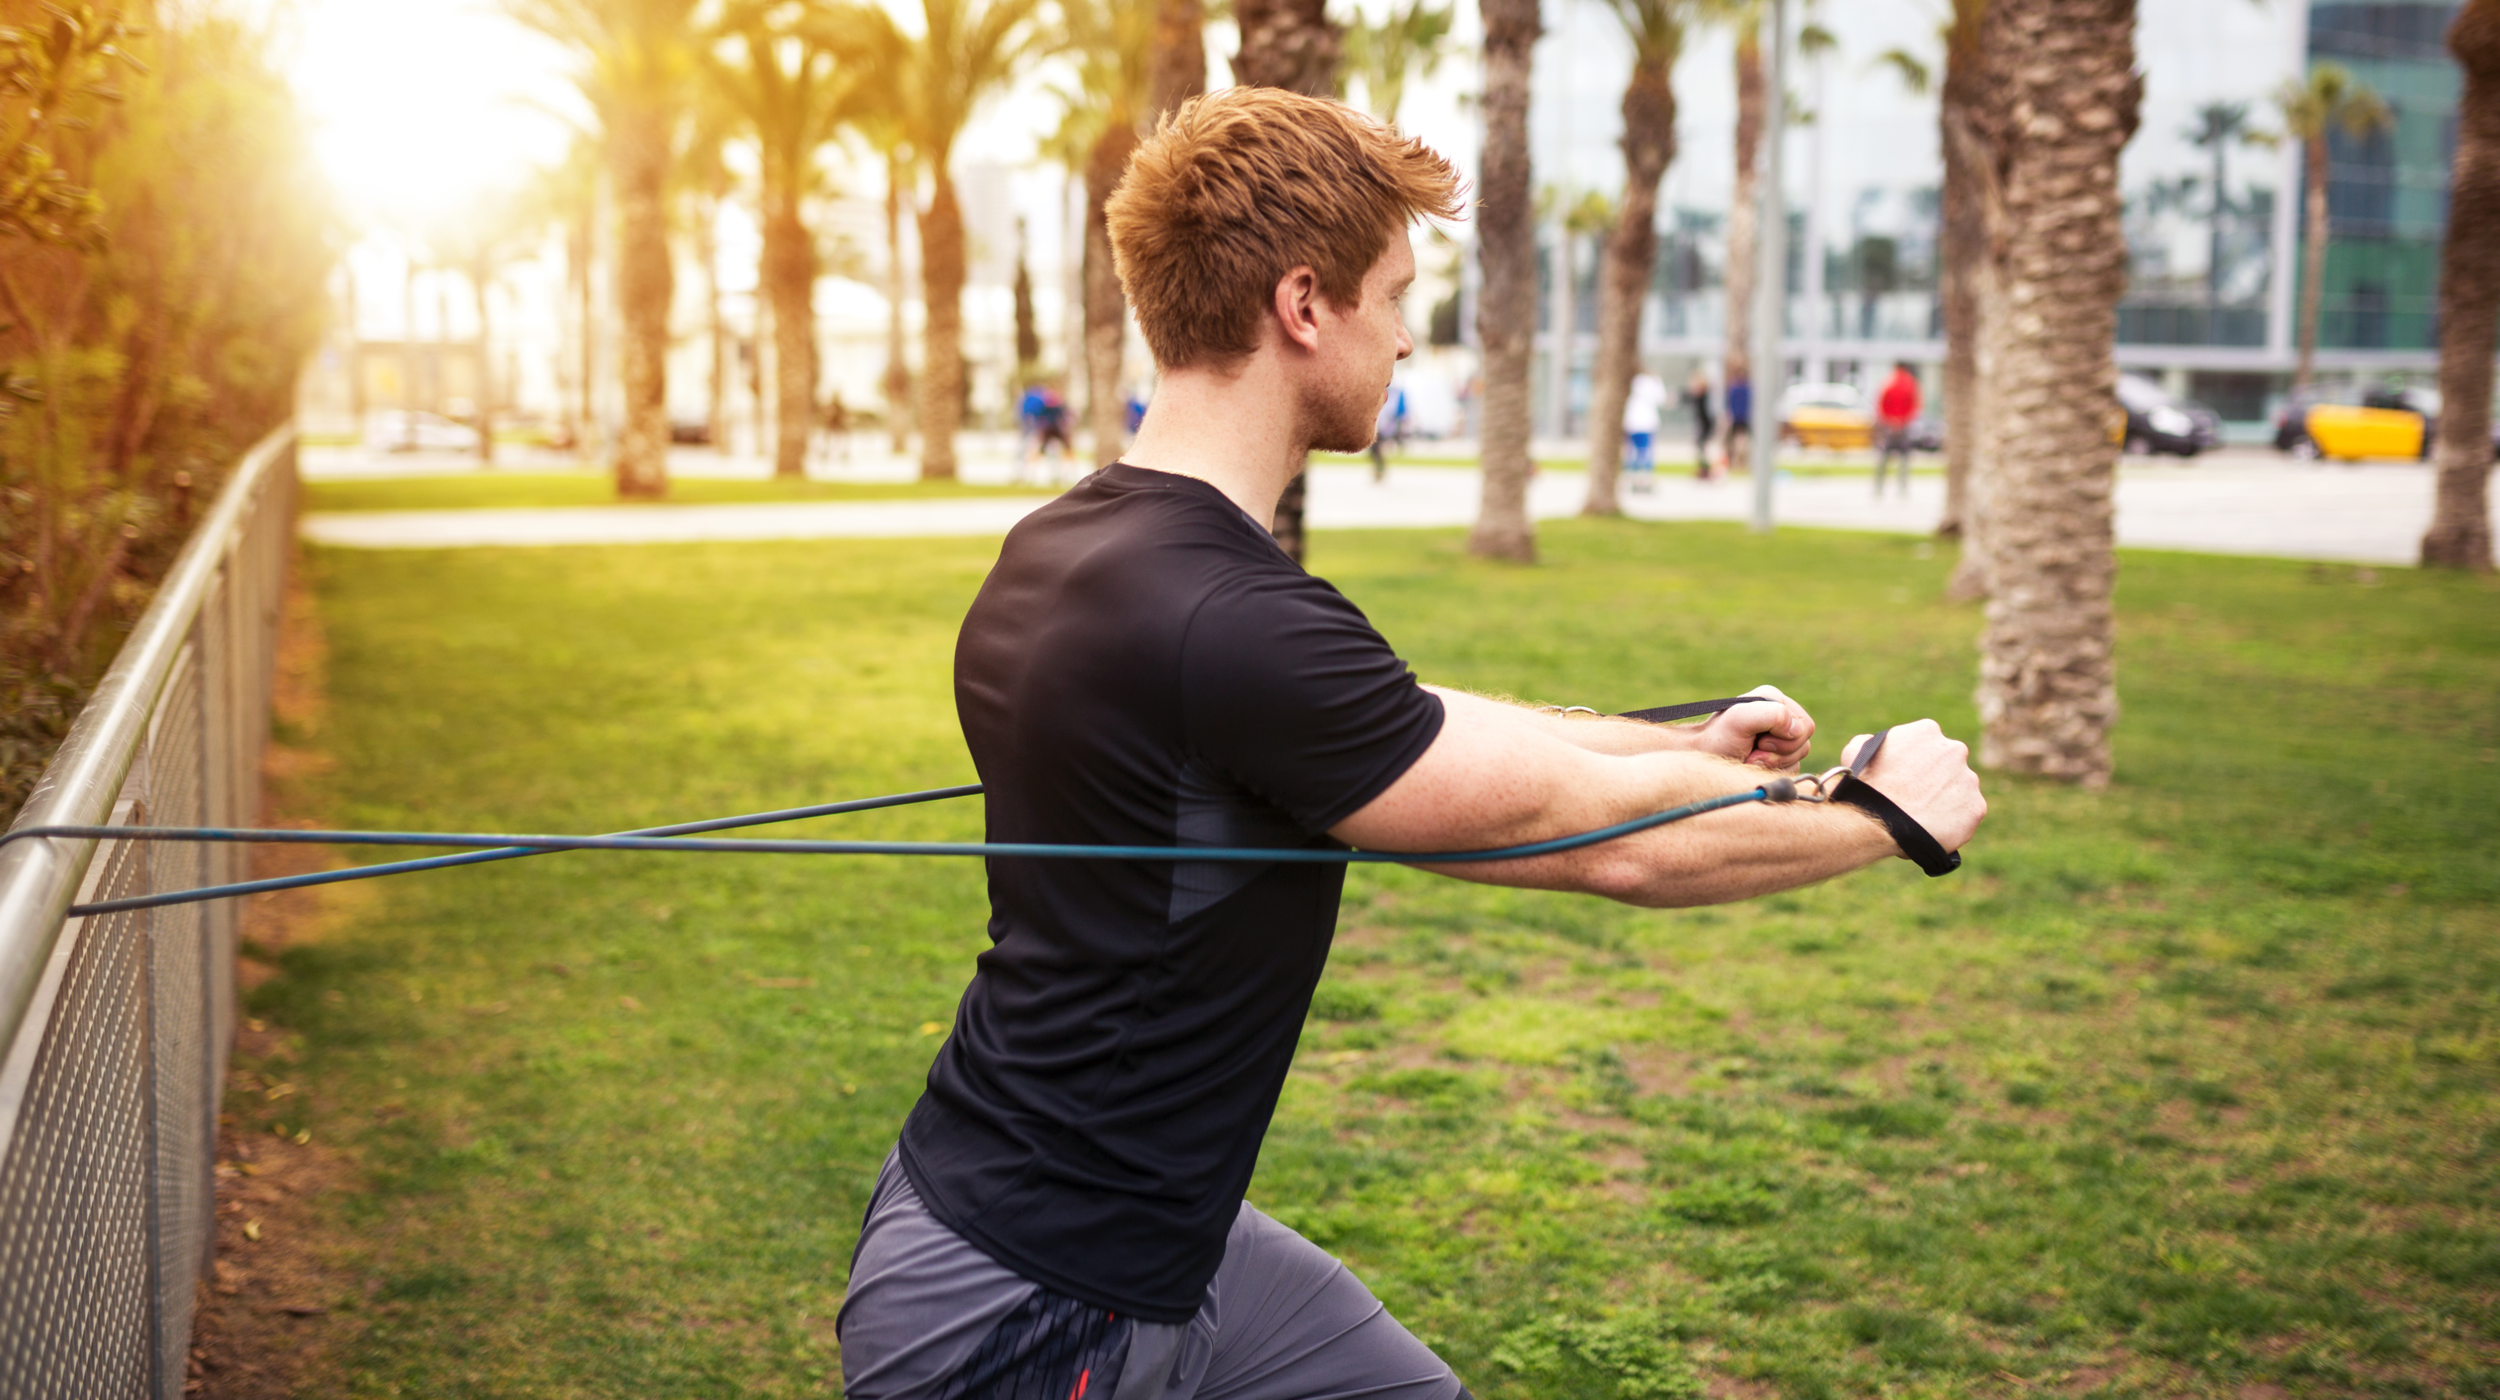 What are the Best Resistance Band Exercises?